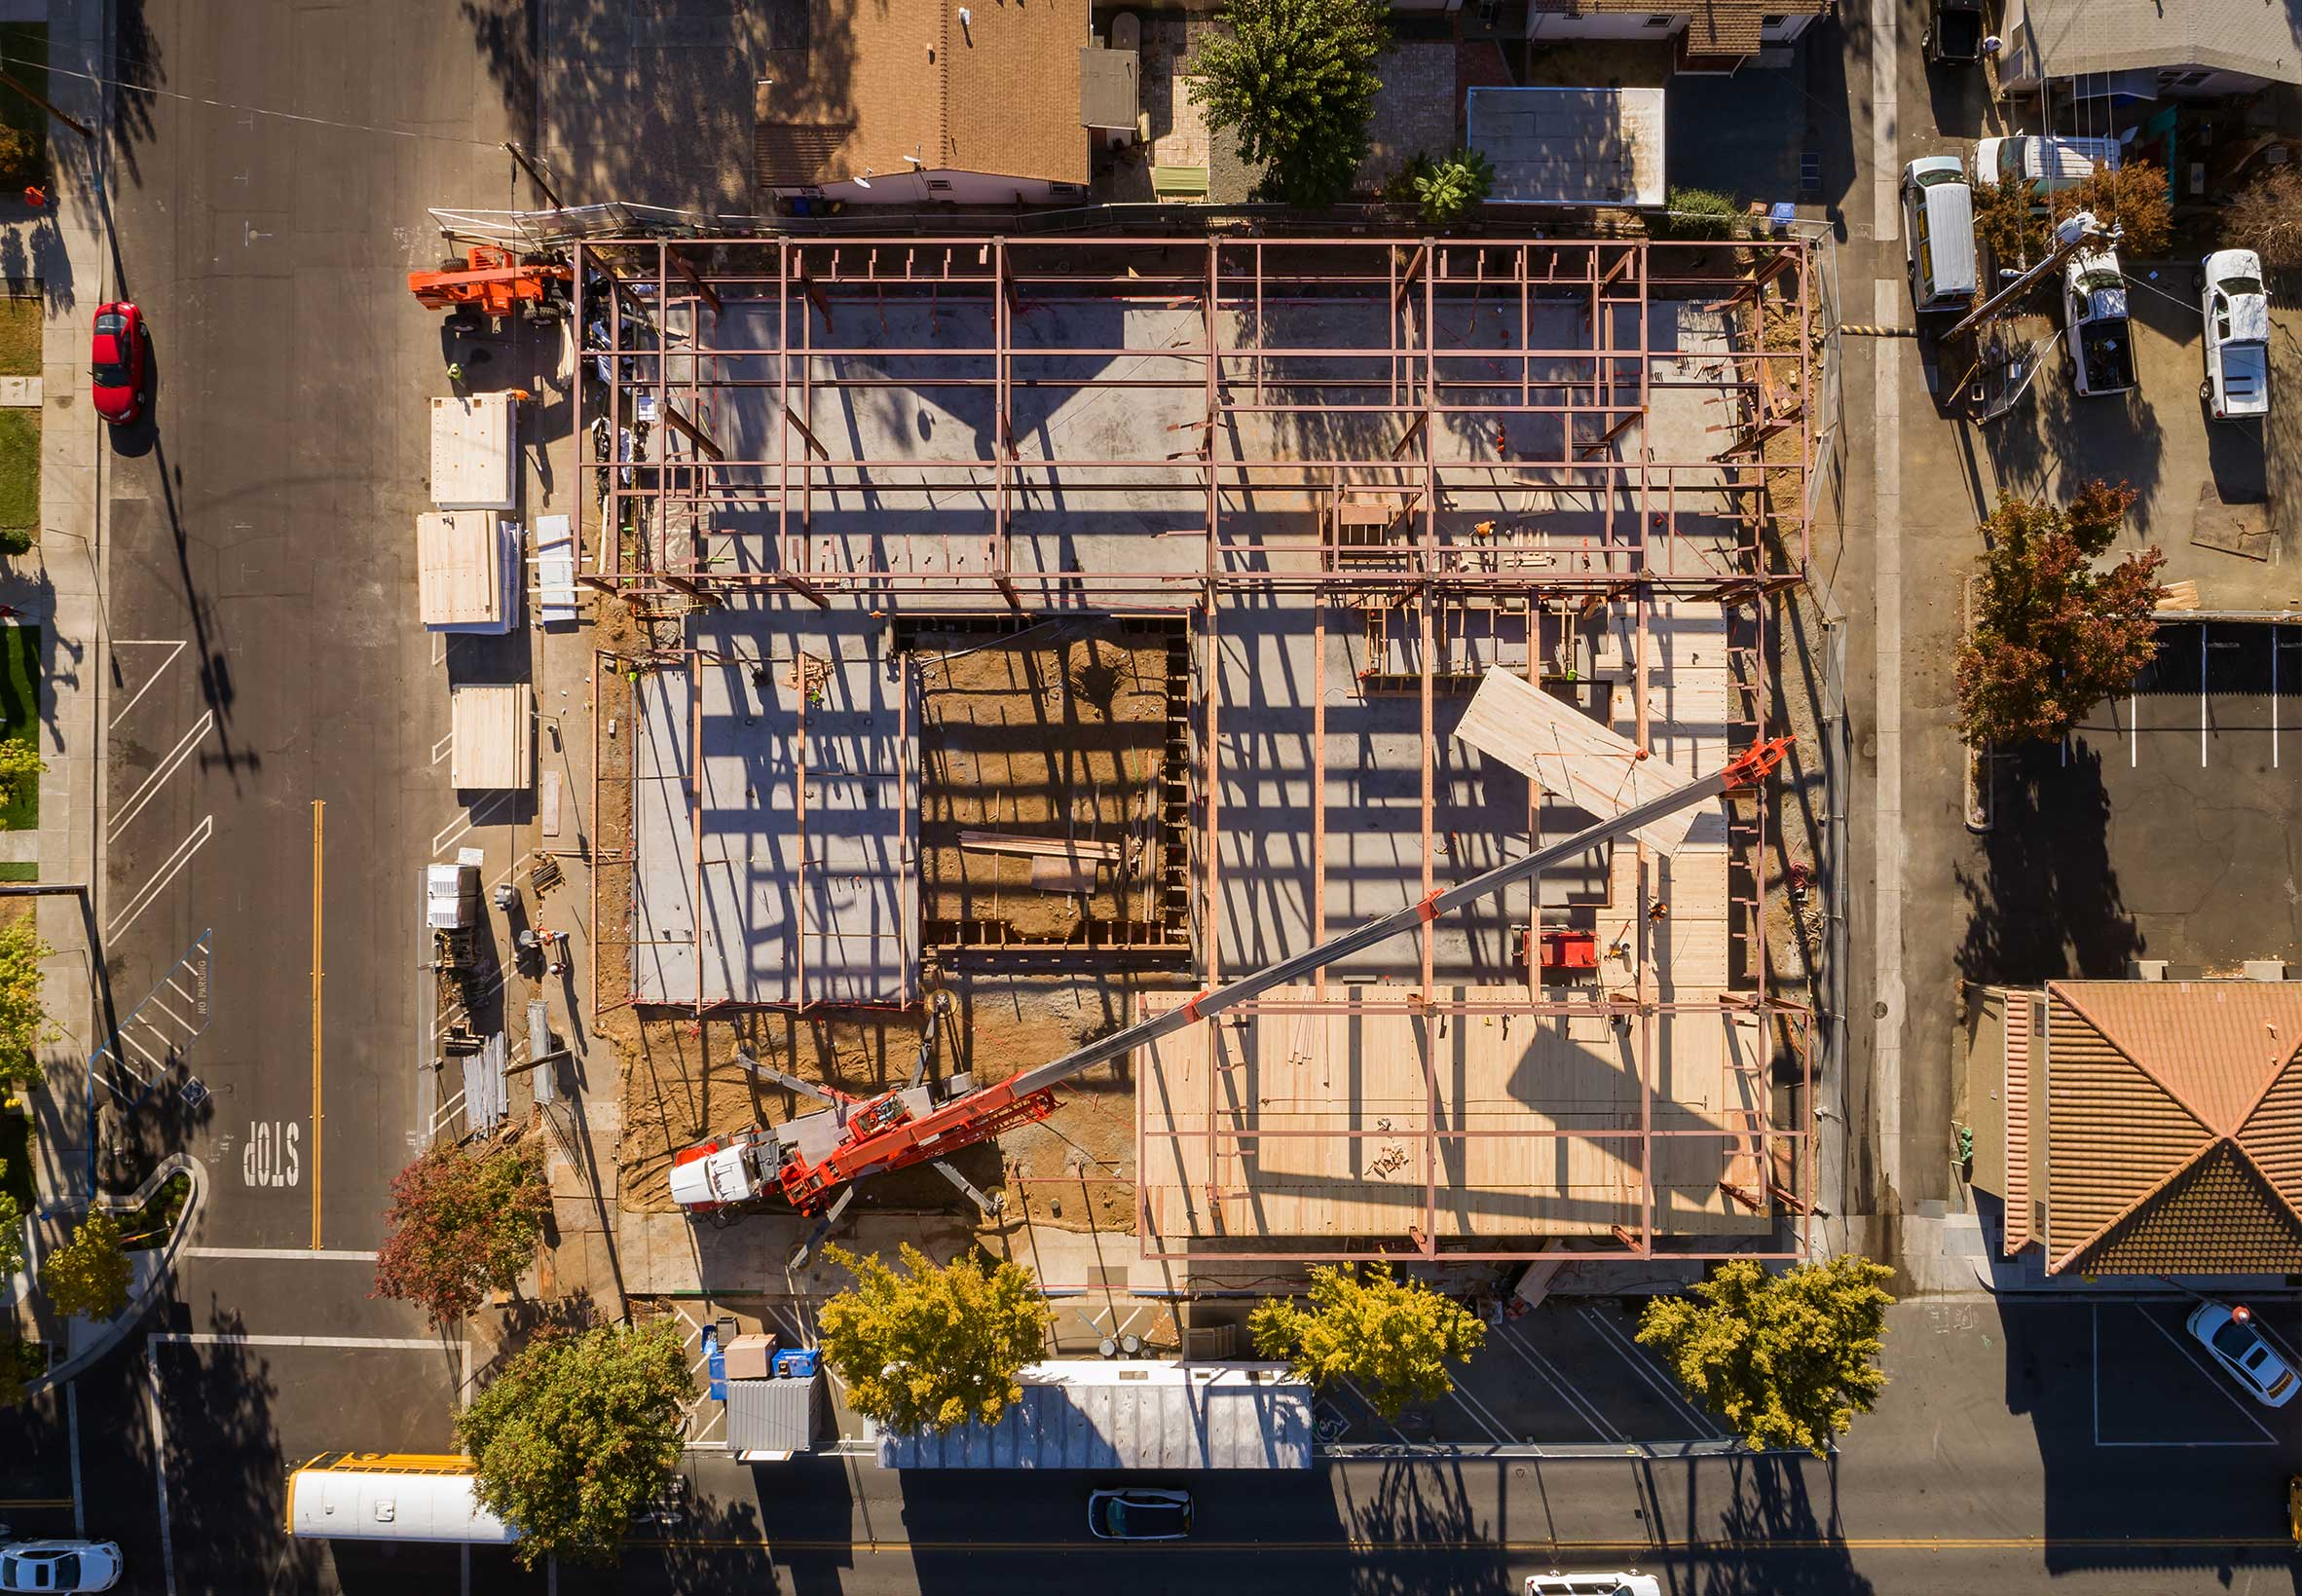 Aerial of CLT Construction at Brentwood Public Library in Brentwood, CA